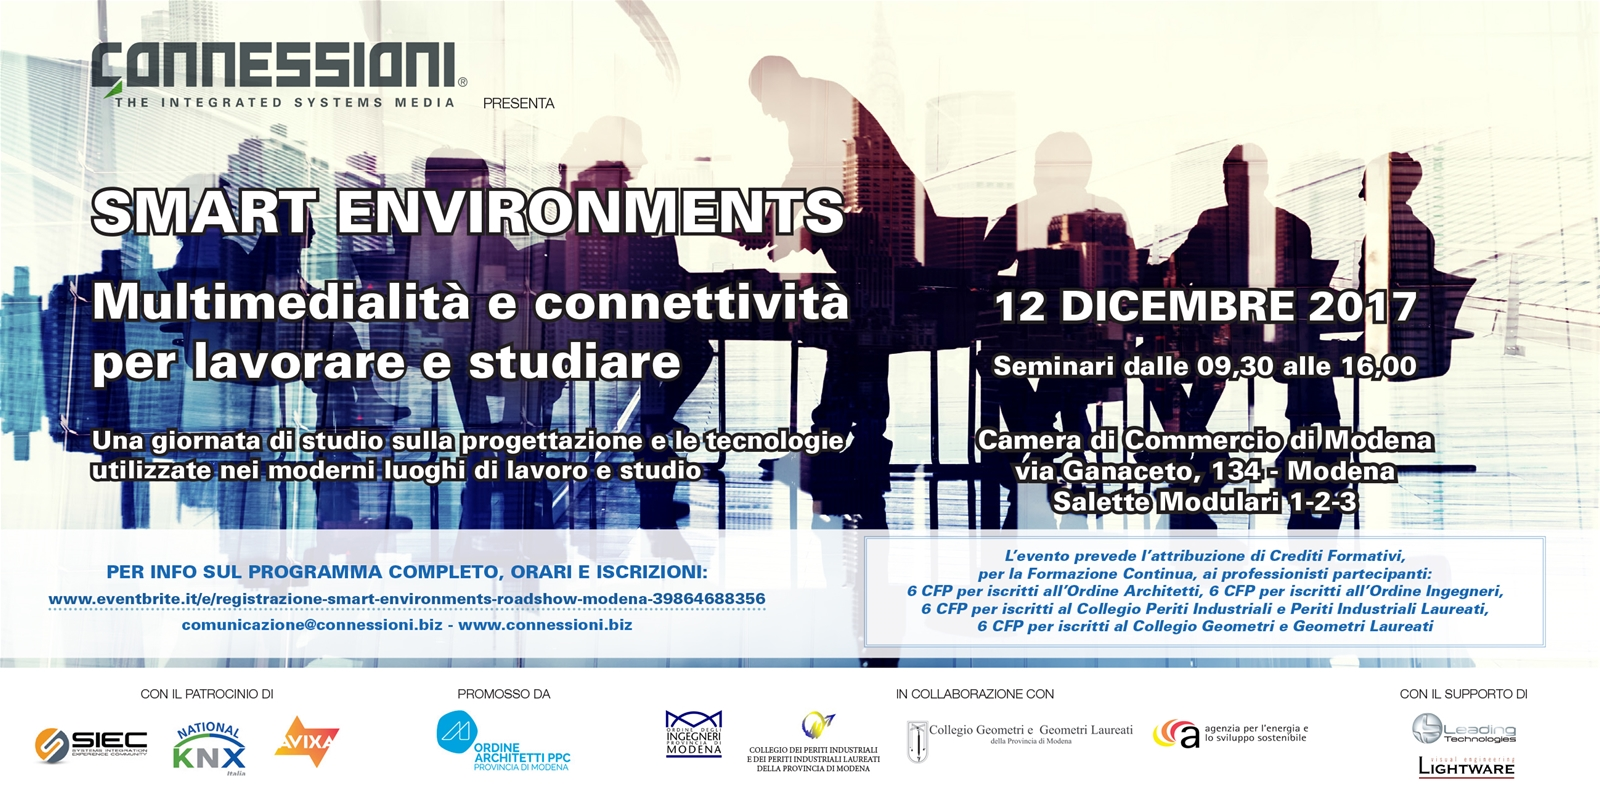 Smart Environments Roadshow - Ultima tappa